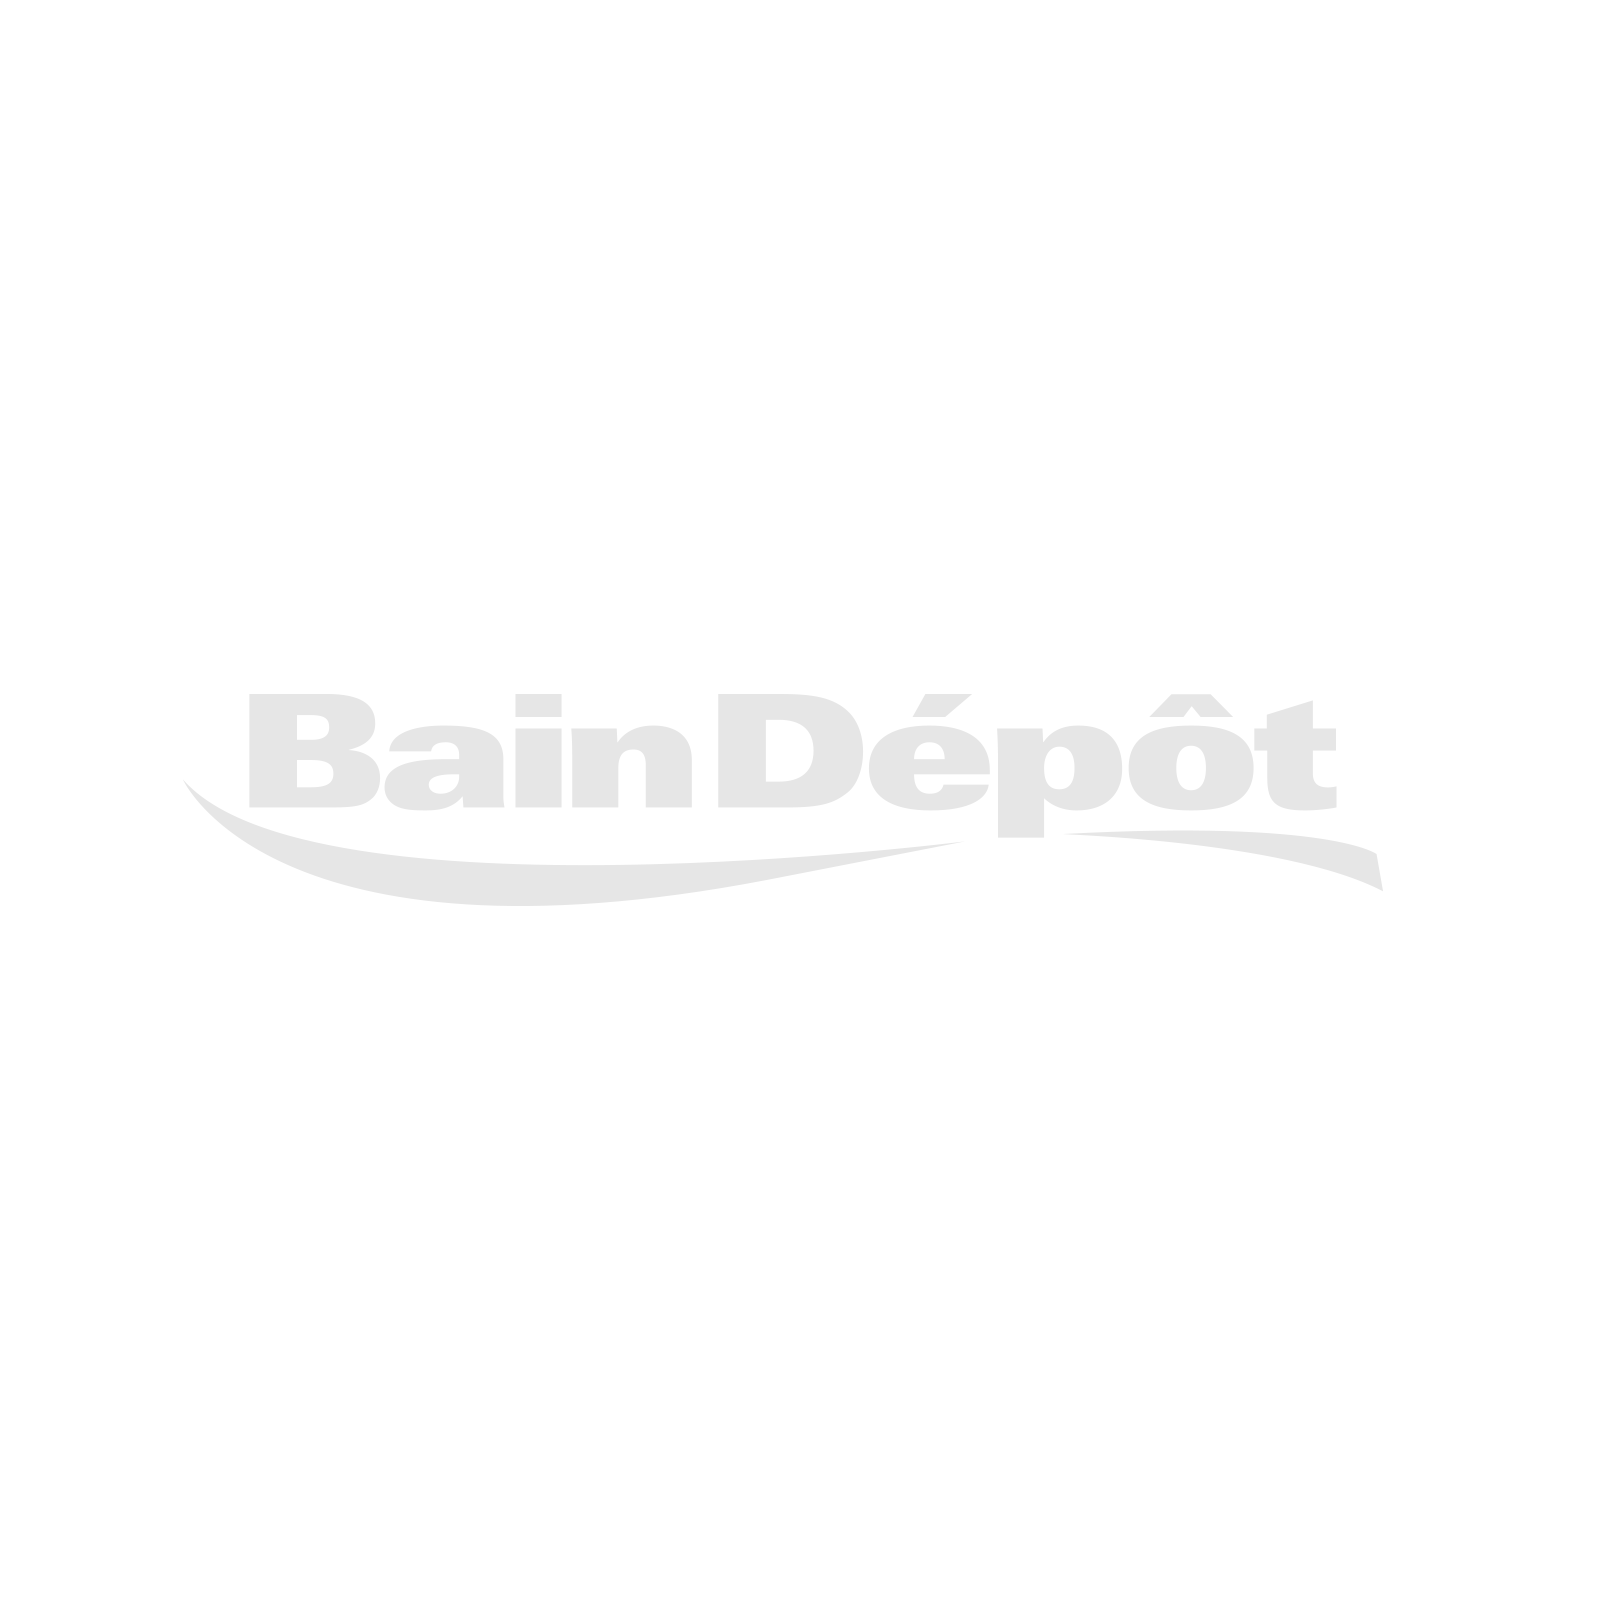 Modern brushed nickel kitchen faucet with touch technology and soap pump